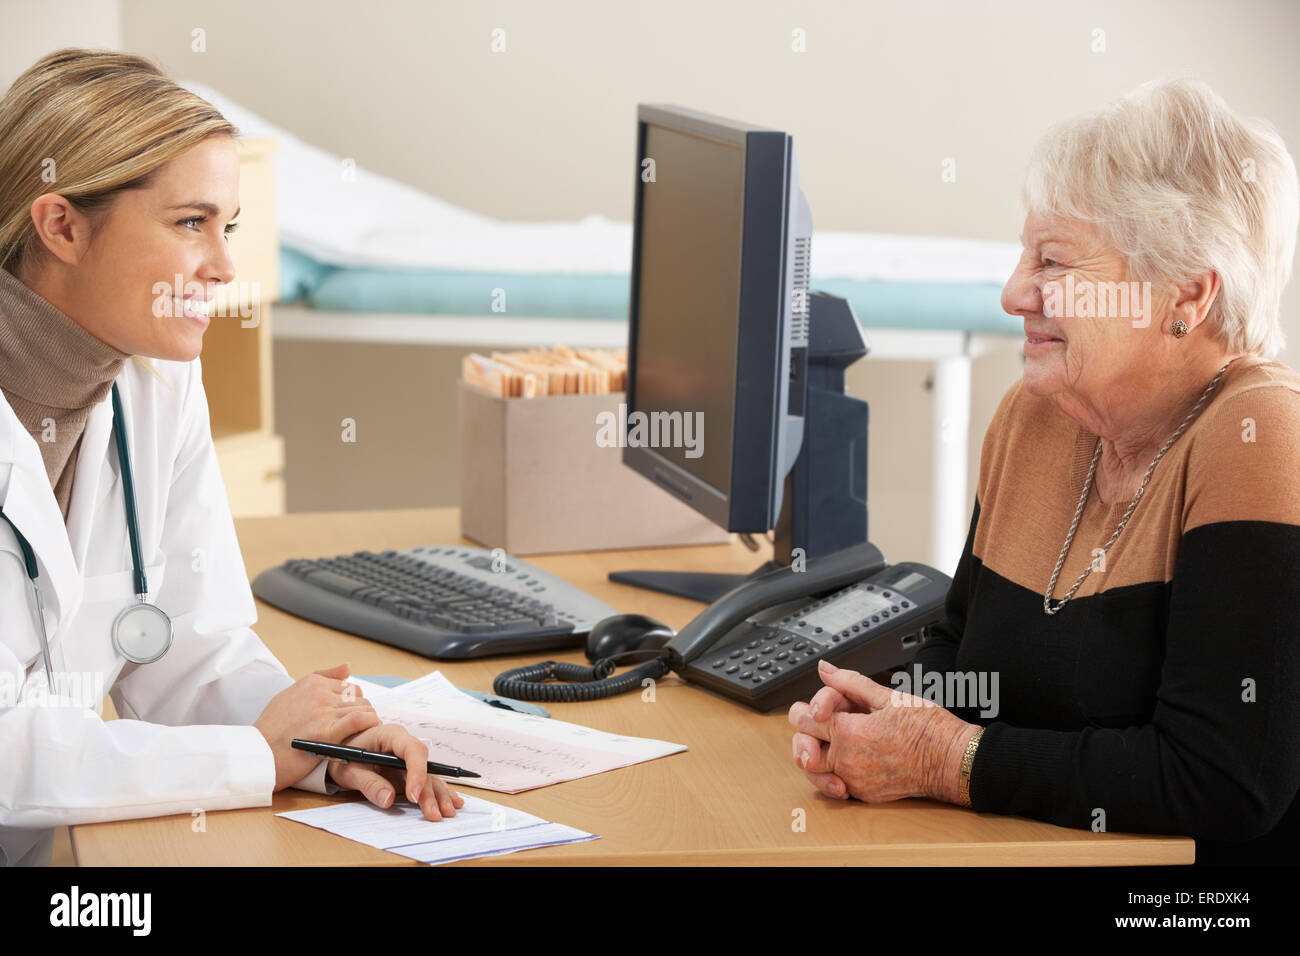 Doctor talking to senior woman patient - Stock Image